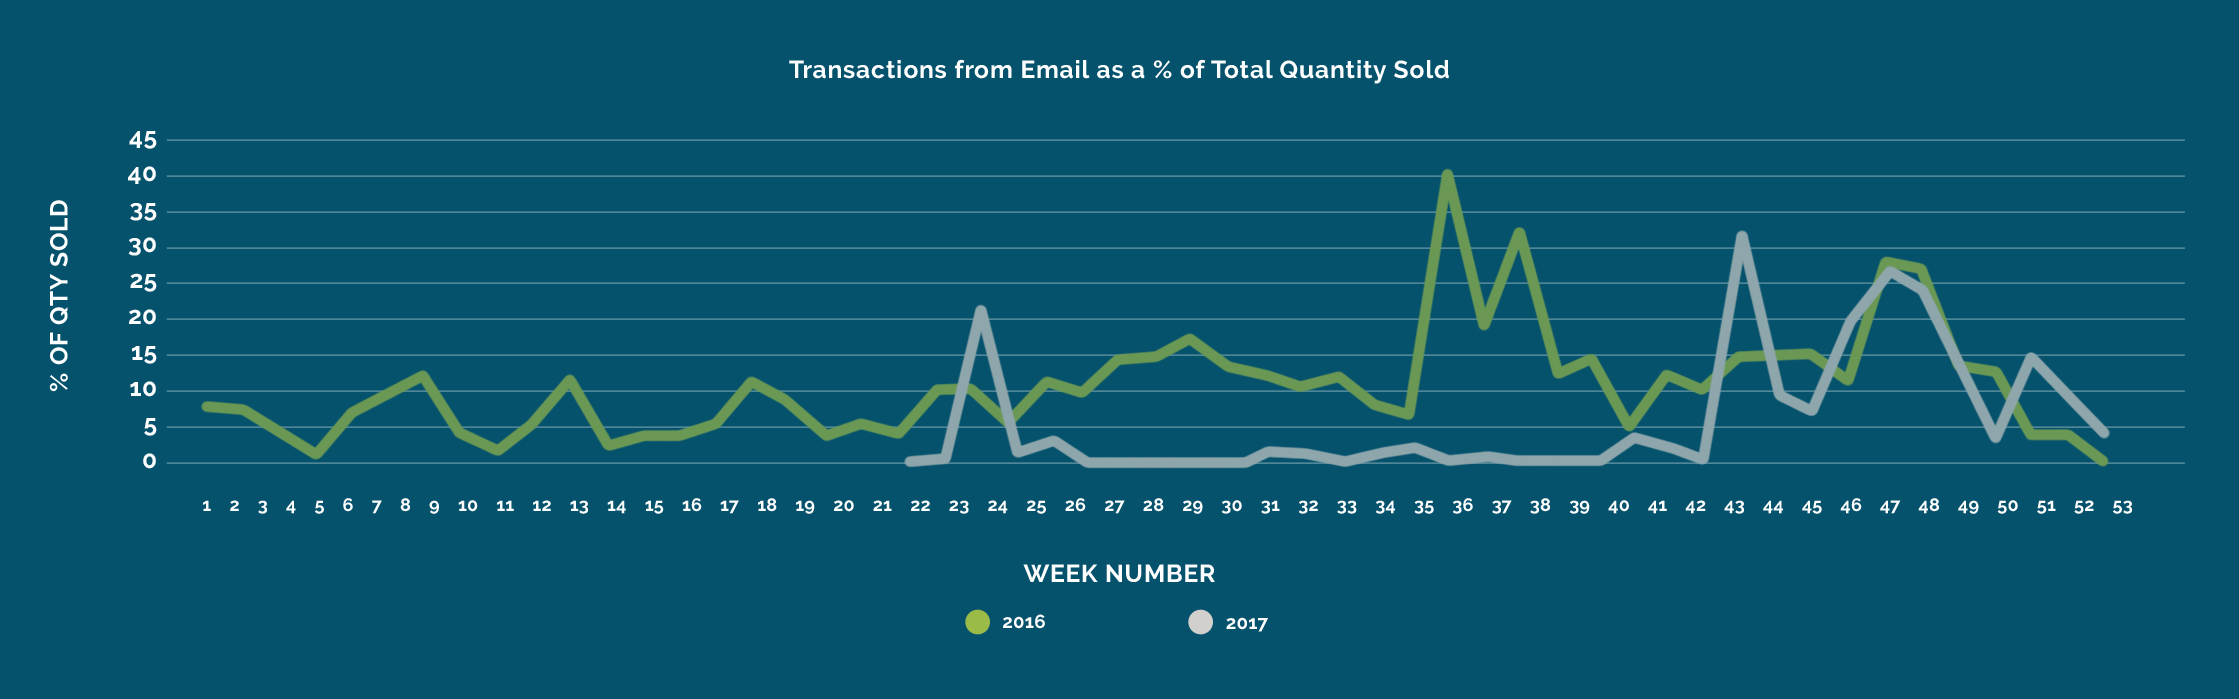 Transactions from Email as a % of Total Quantity Sold